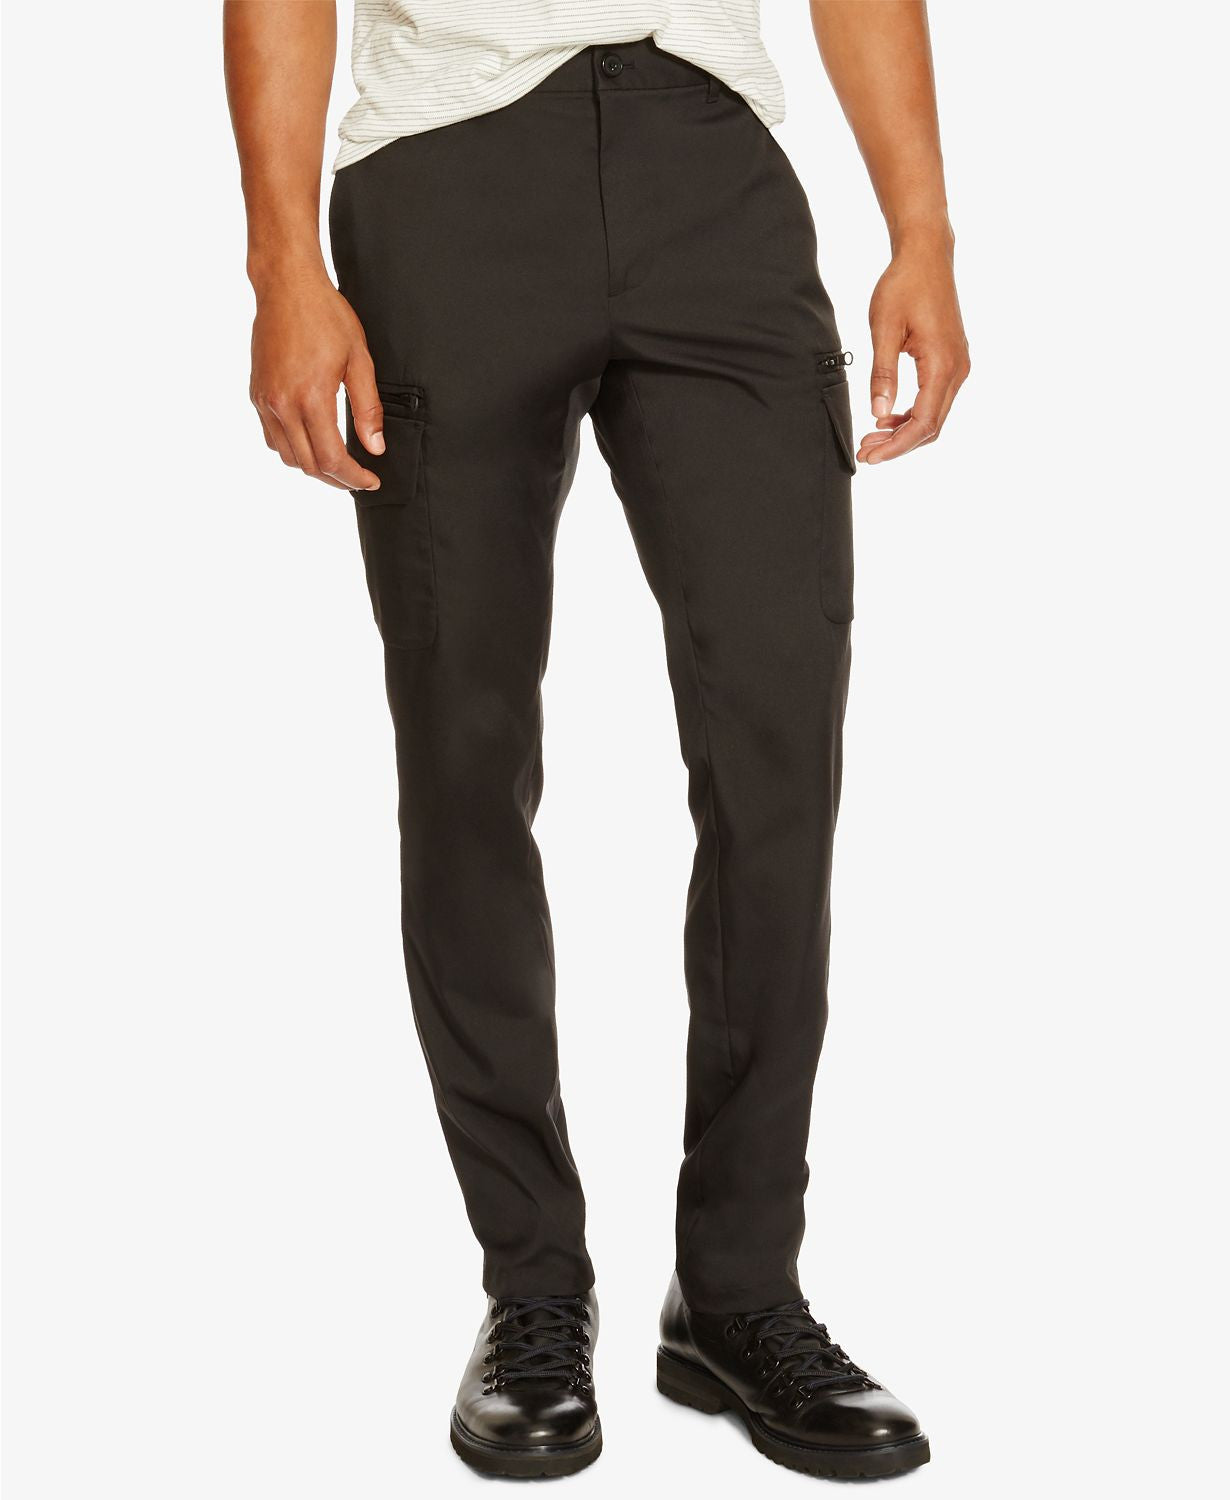 KKenneth Cole Reaction Black Cargo Pants Black